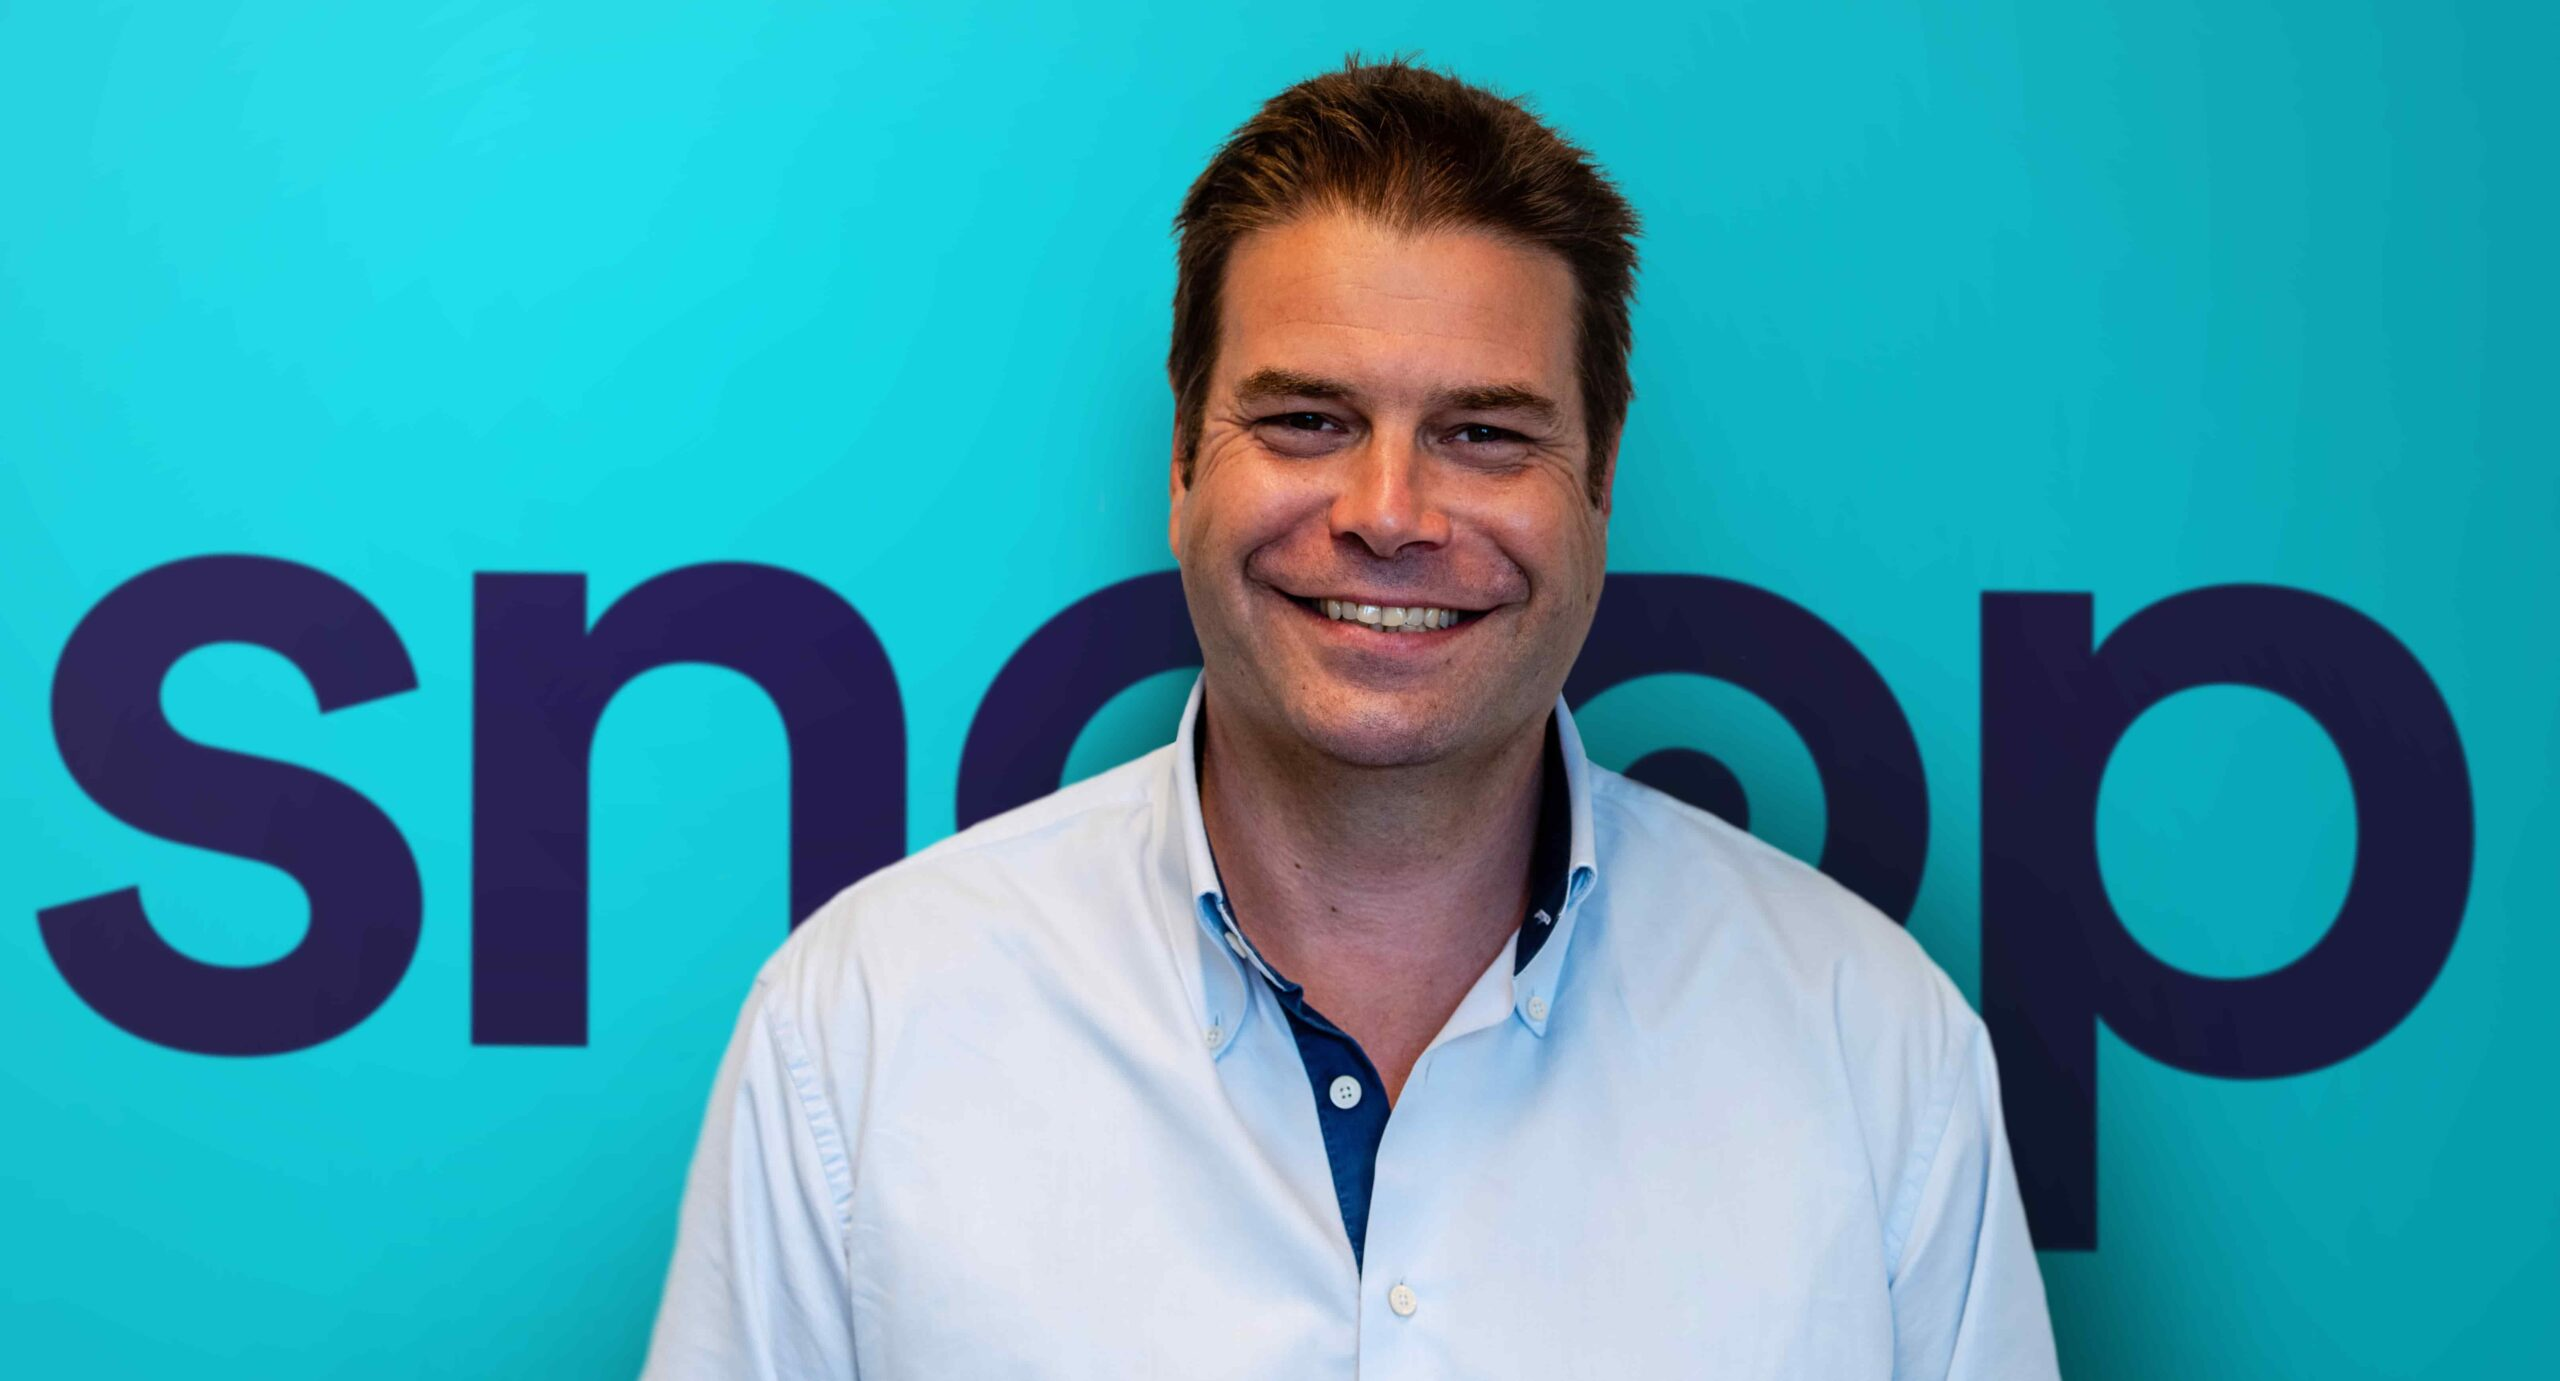 Usnoop (t/a Snoop) secures £10 million Seed Follow On investment via Seedrs